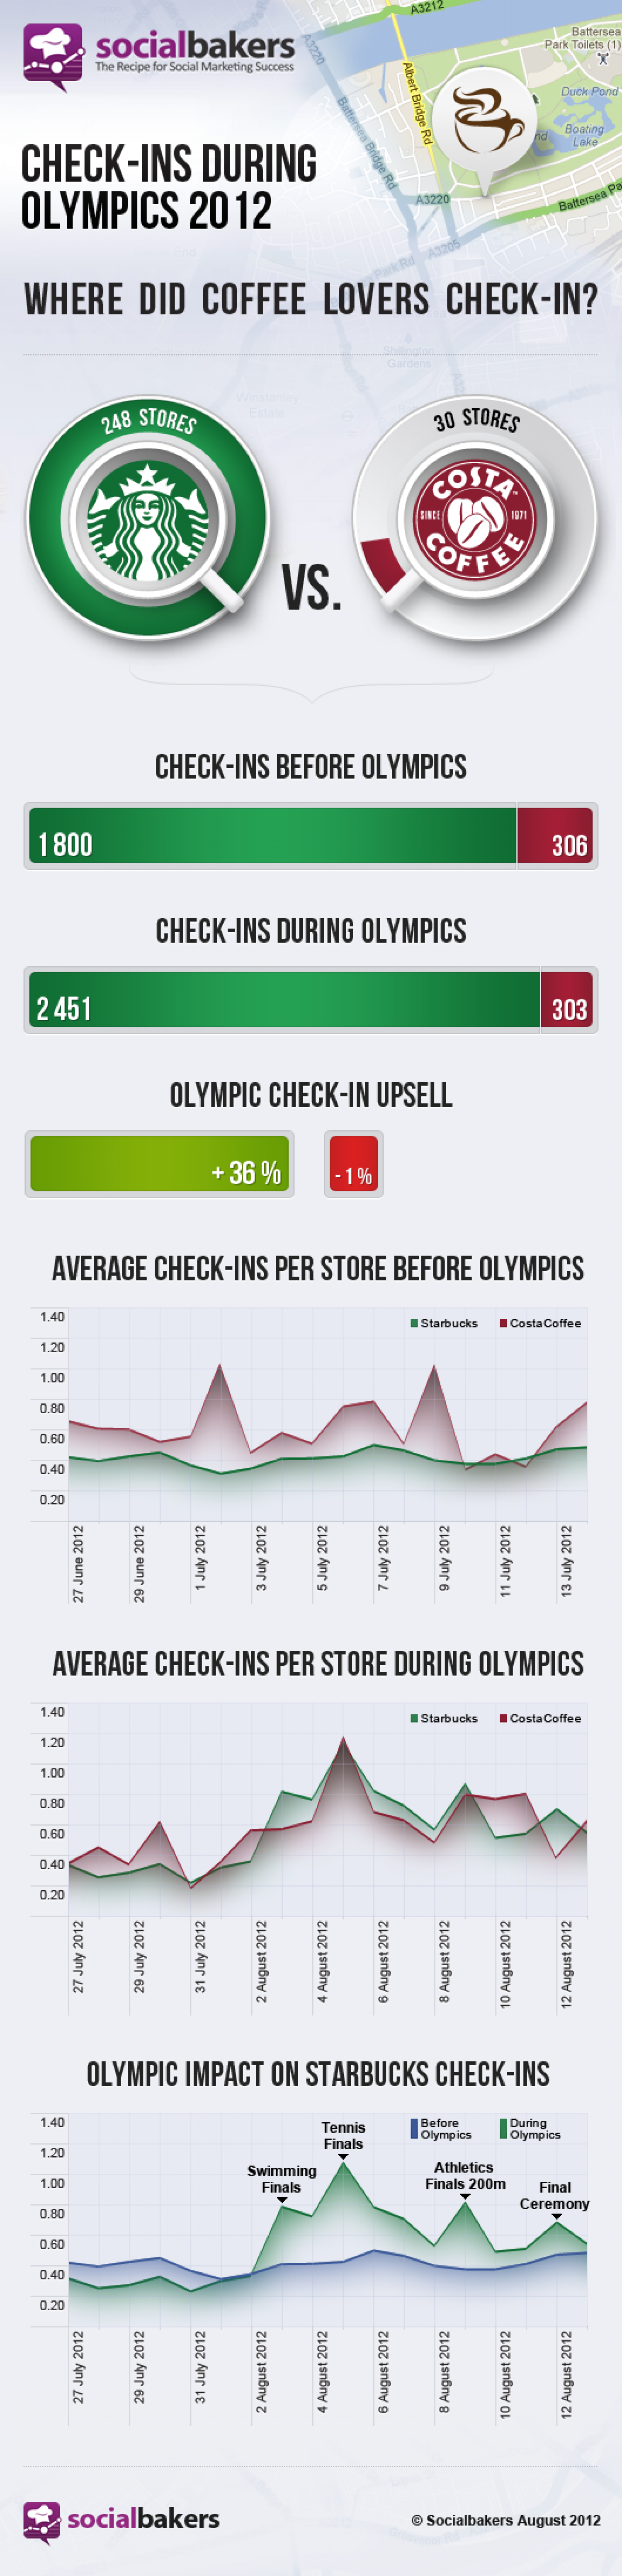 Check-ins during Olympics 2012 - CostaCofee vs. Starbucks Infographic